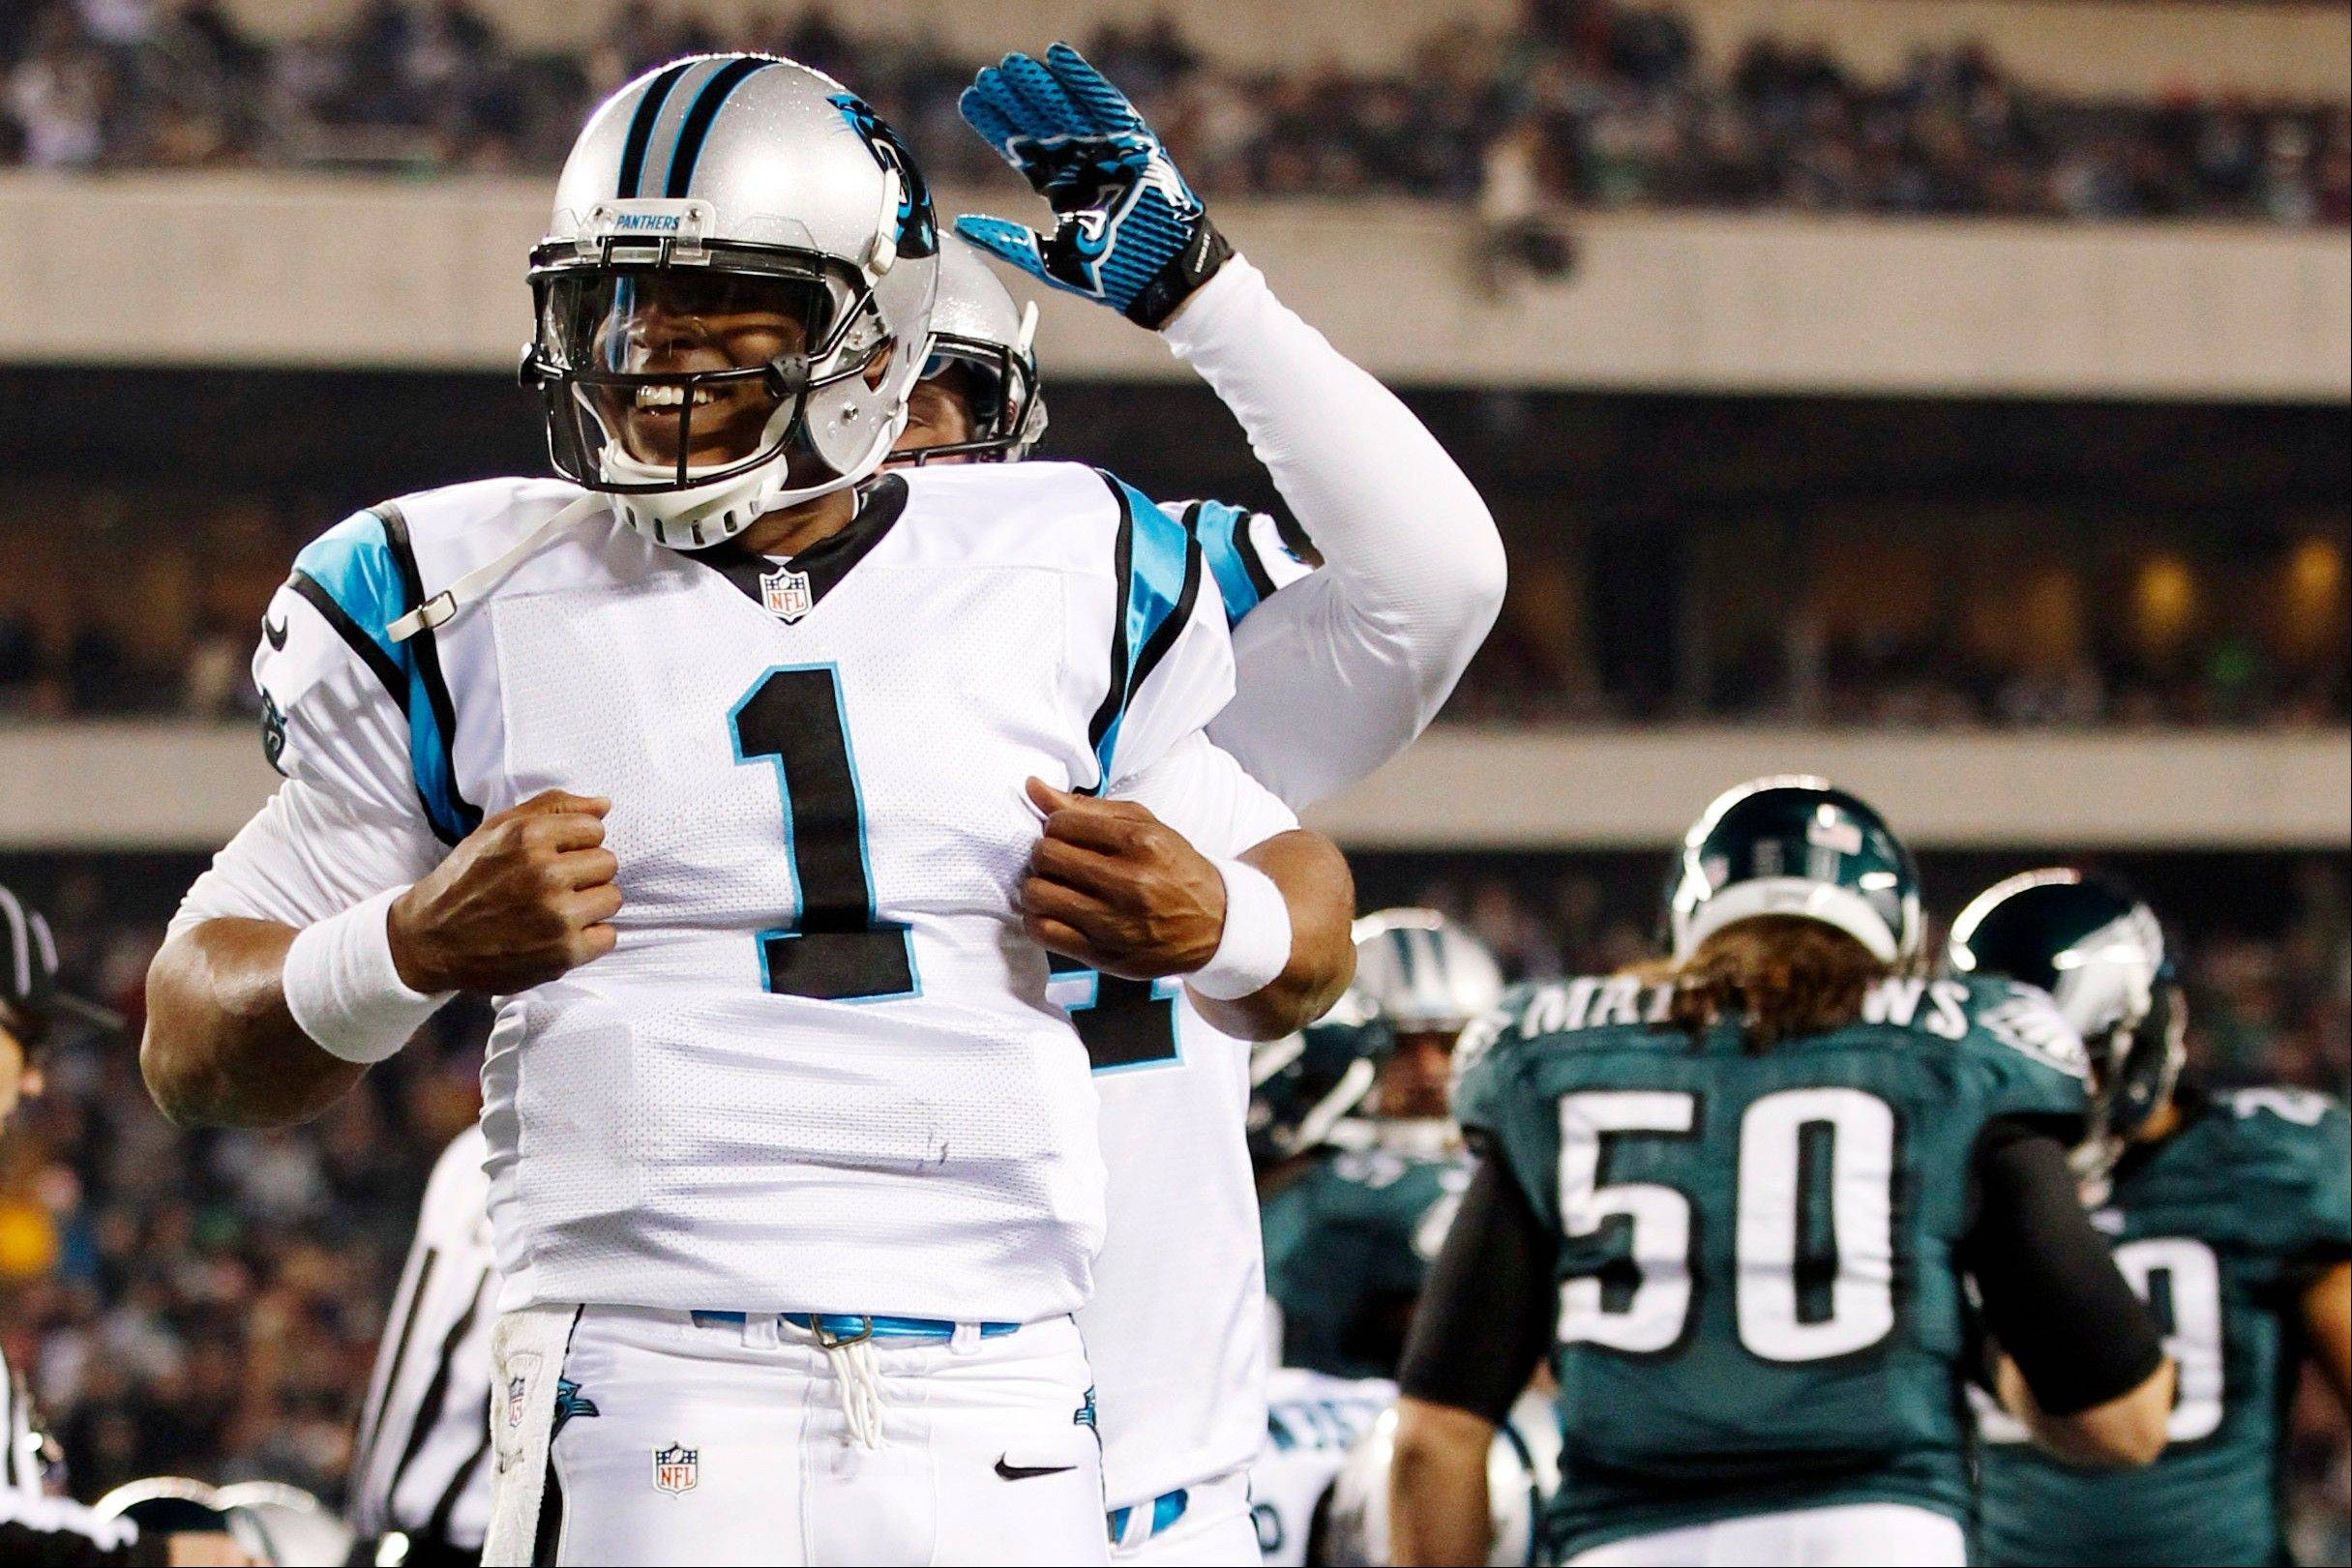 Carolina's Cam Newton ranked No. 20 in fantasy football scoring after the first half of the NFL season, but since Week 9 he is first in scoring with 9 touchdowns.